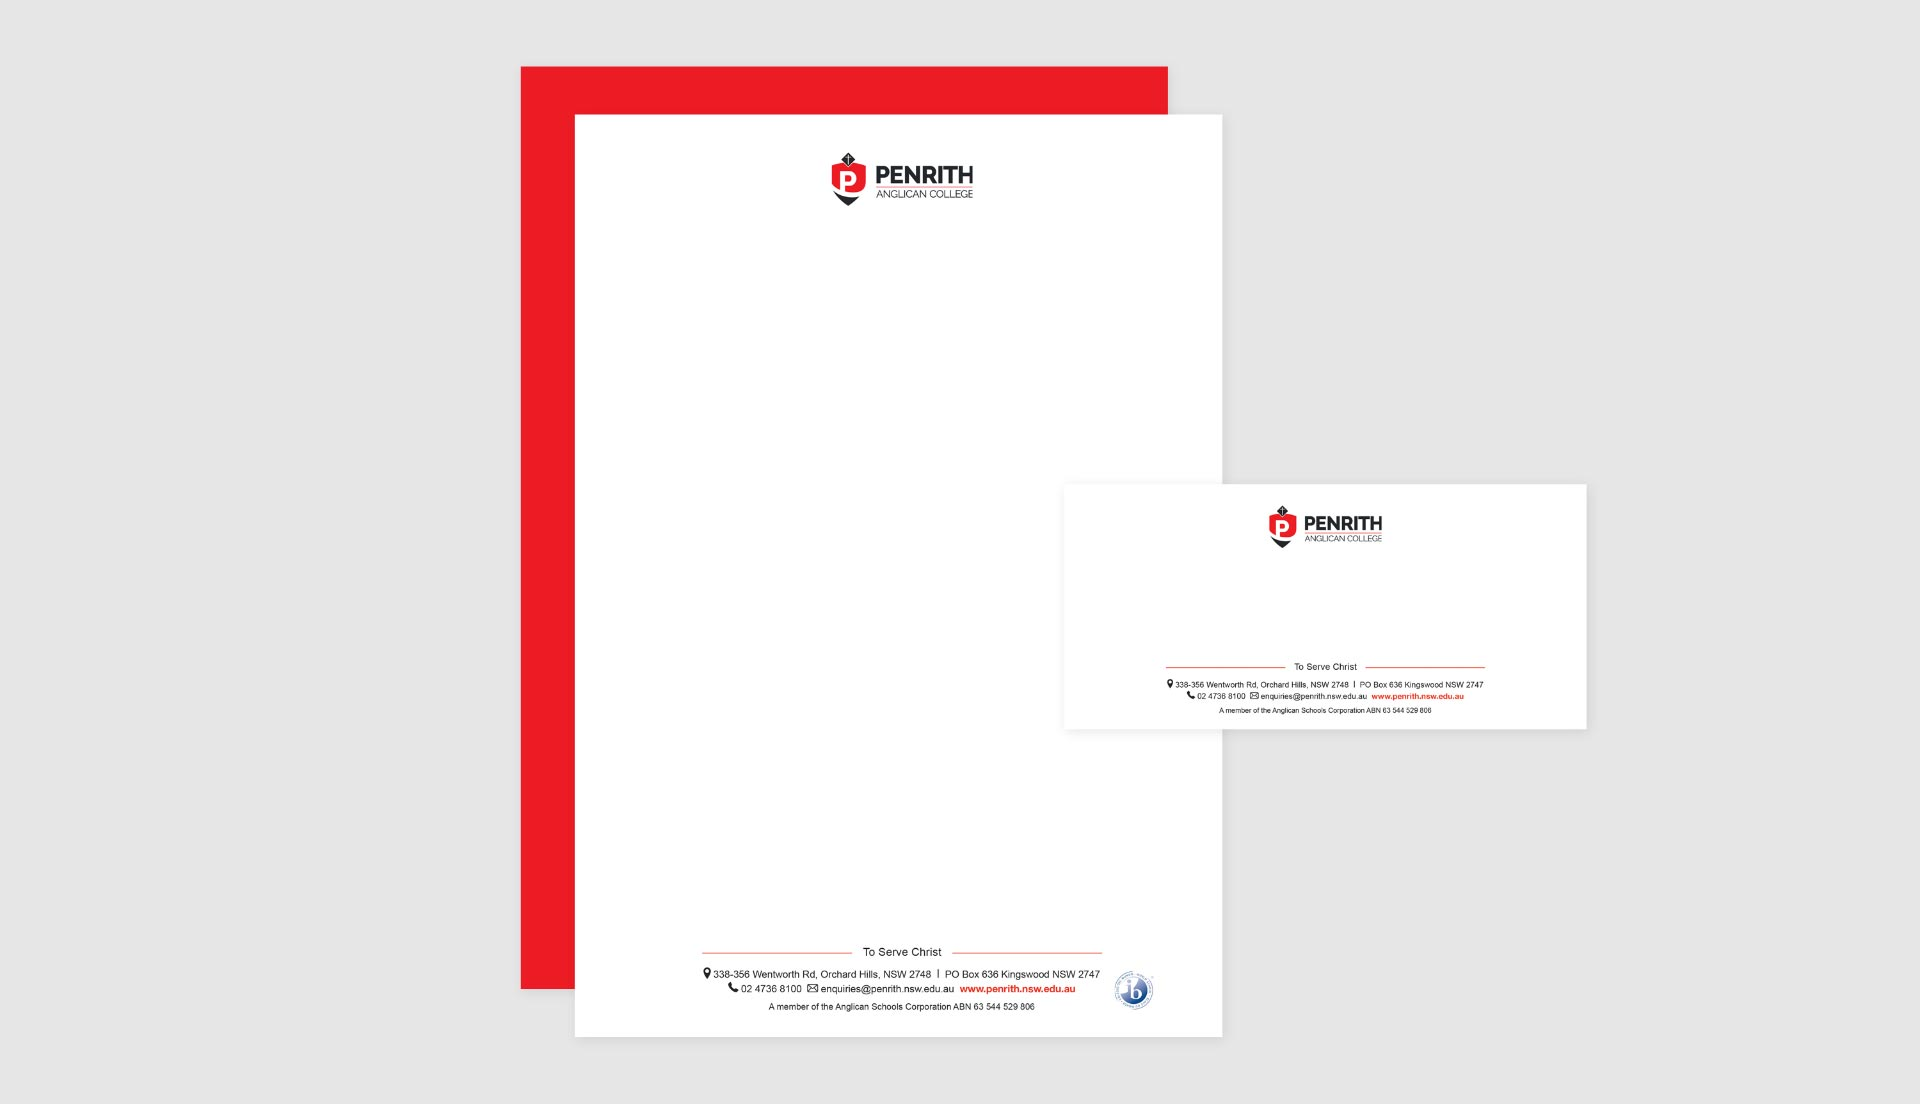 Penrith Anglican College stationary design